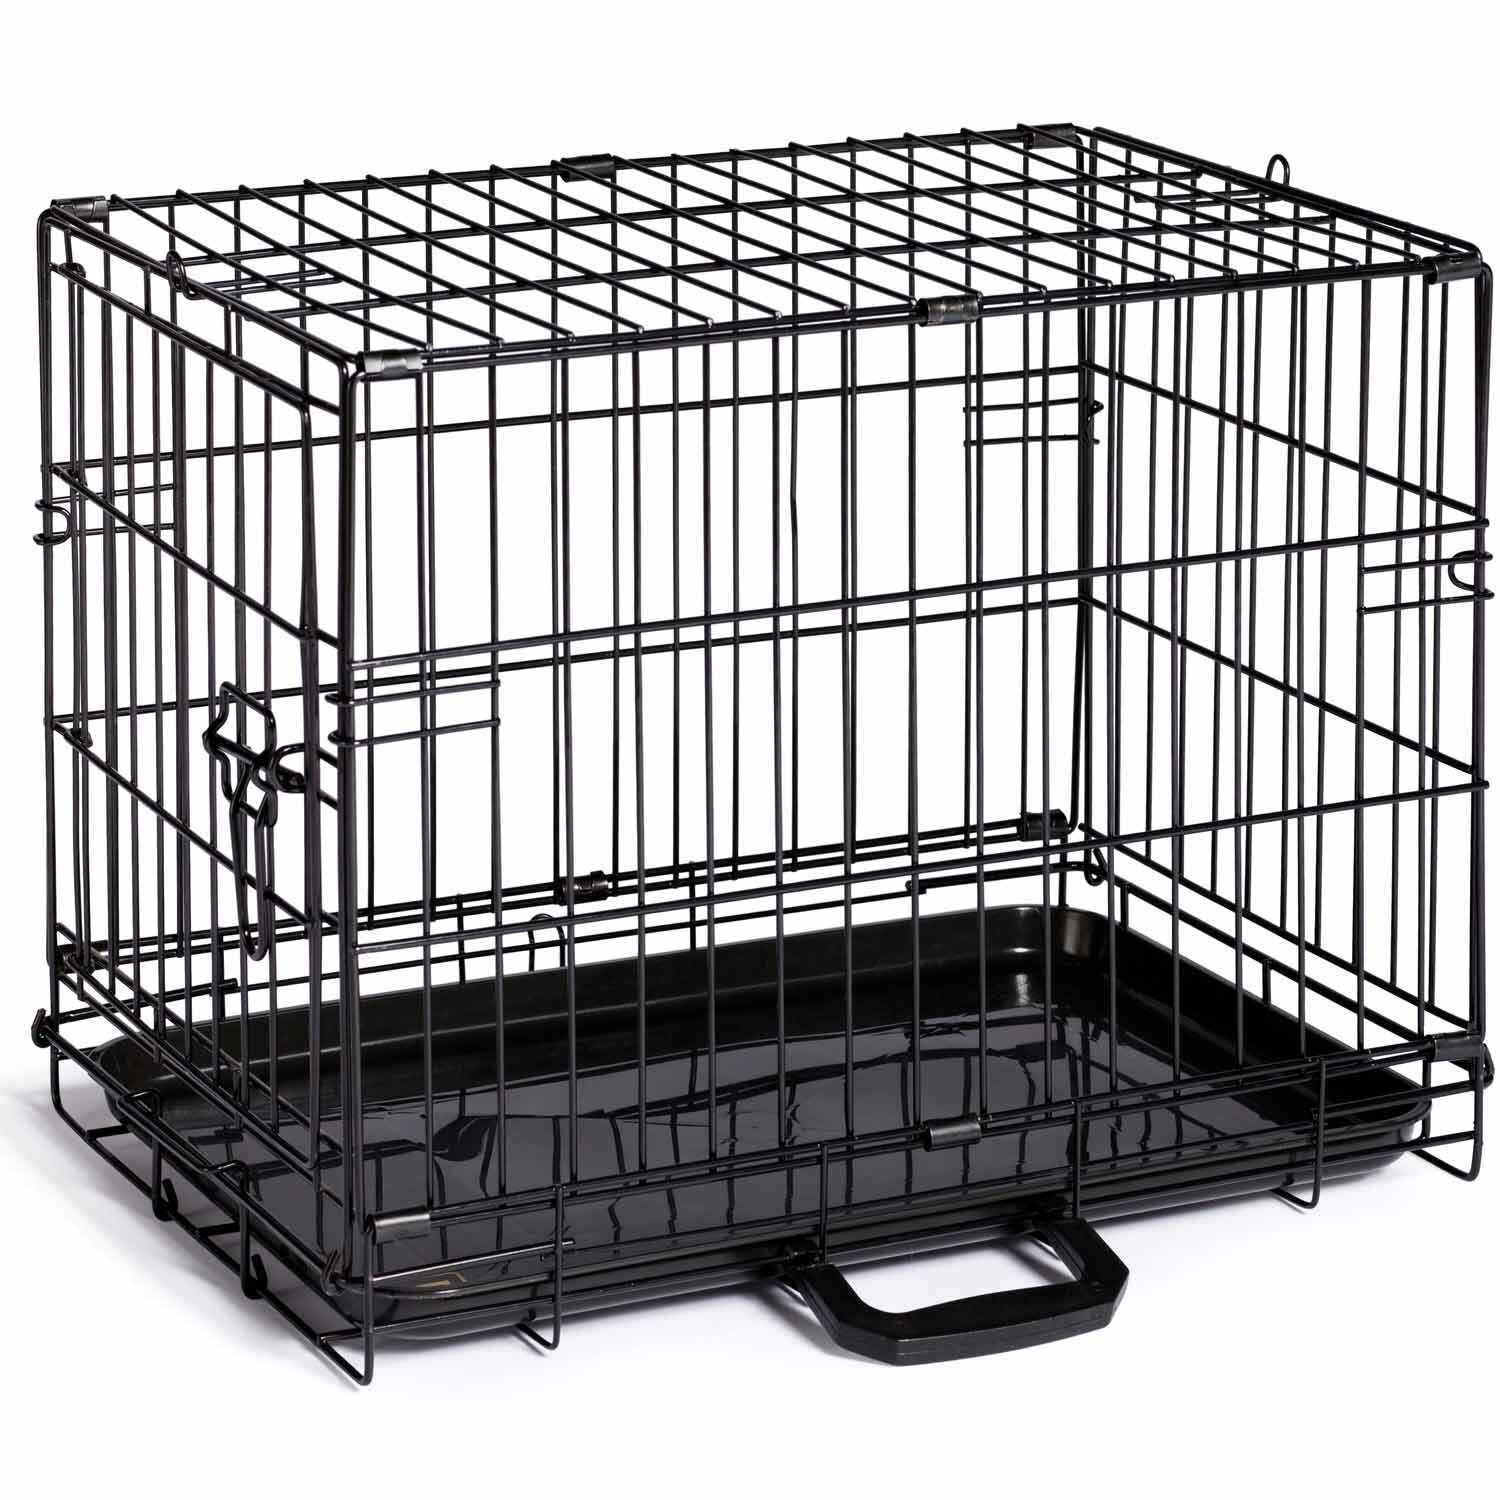 Prevue Hendryx Home On The Go Pet Crate Reviews Wayfair